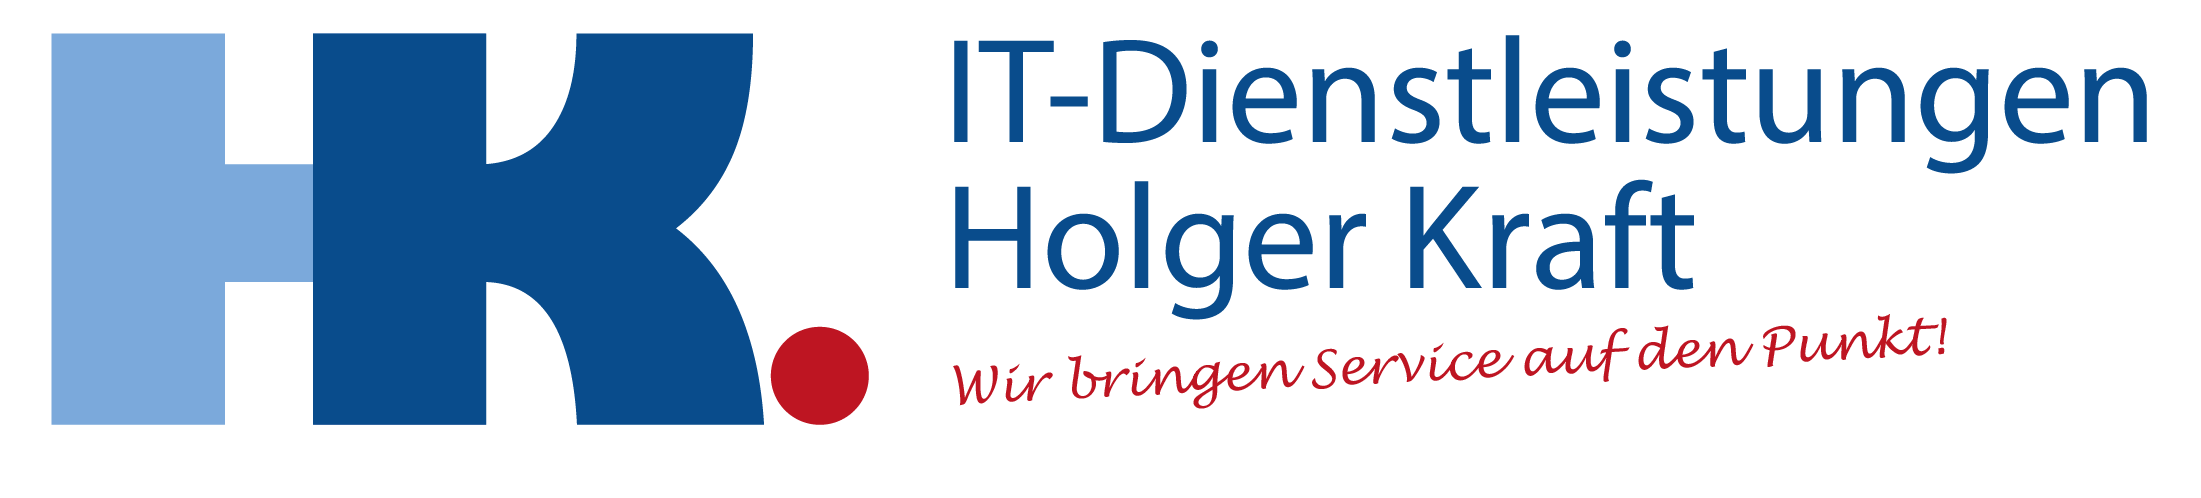 IT-Dienstleistungen Holger Kraft